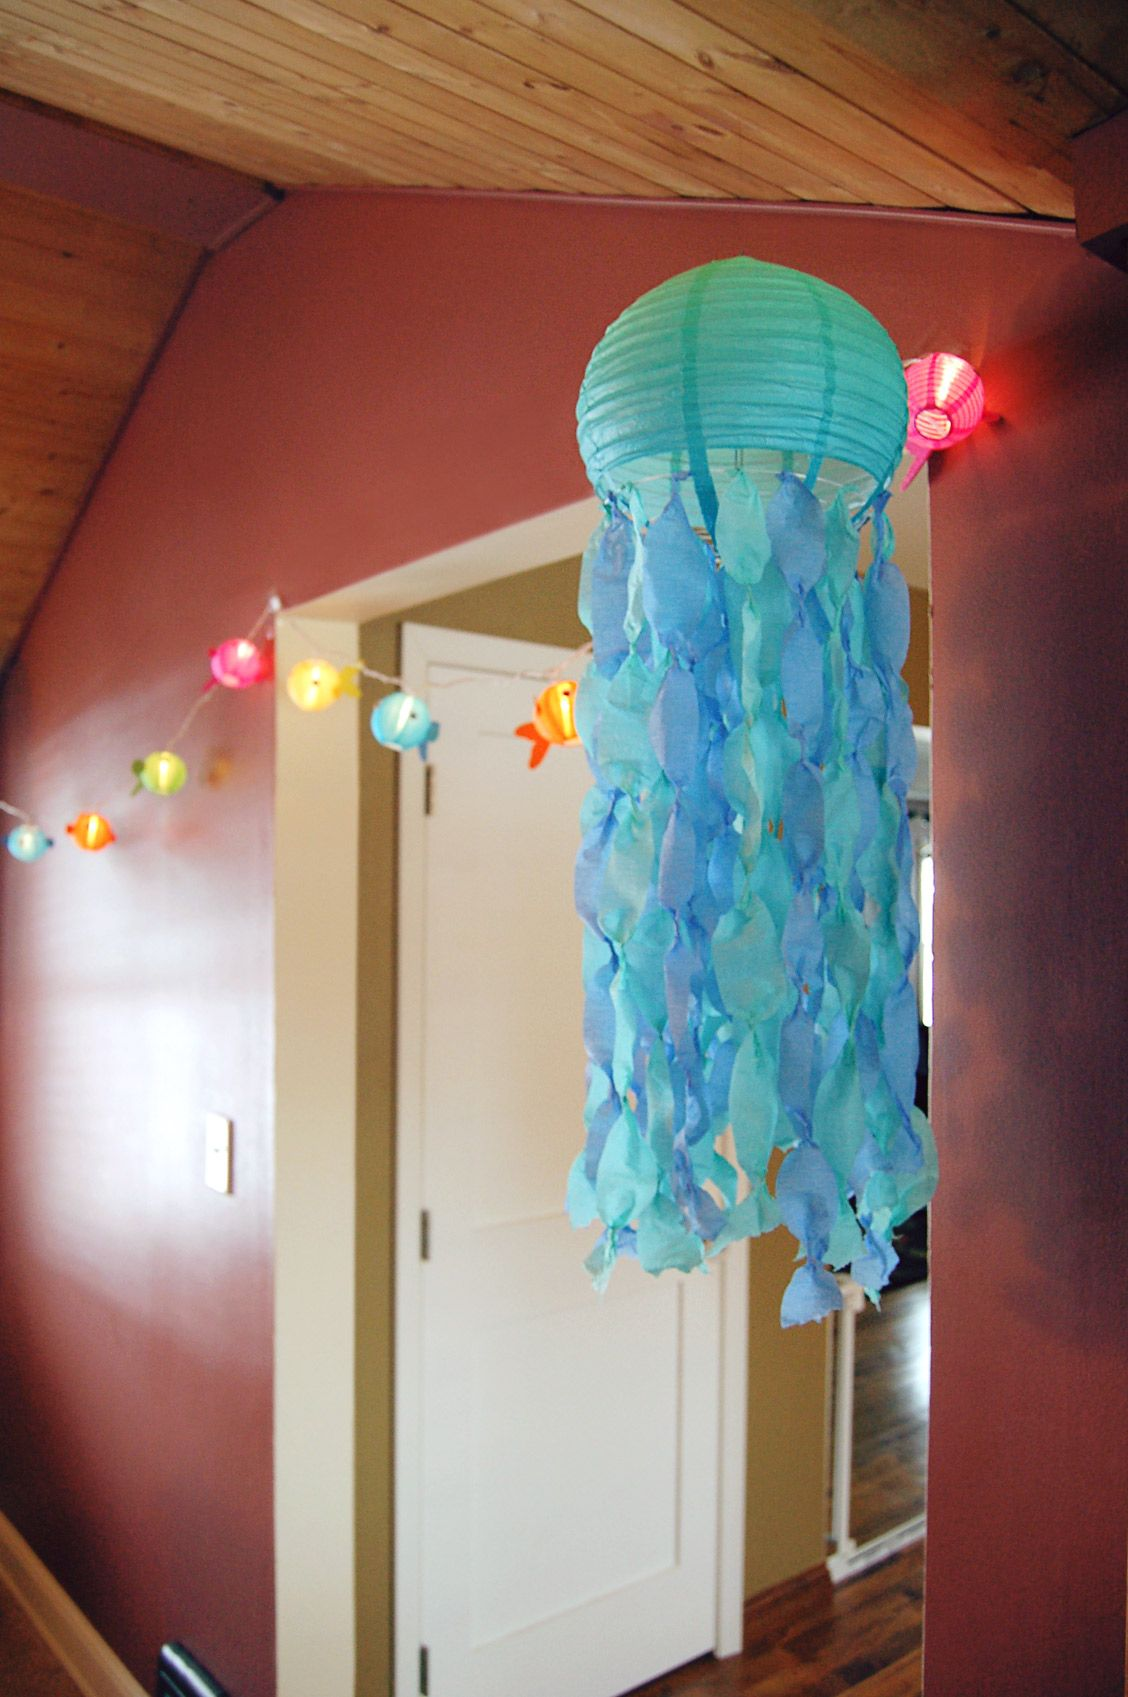 Paper Lantern Jellyfish Gorgeous Jellyfish Lanterns #birthdayexpre…  Parties Mermaid  Under The Inspiration Design